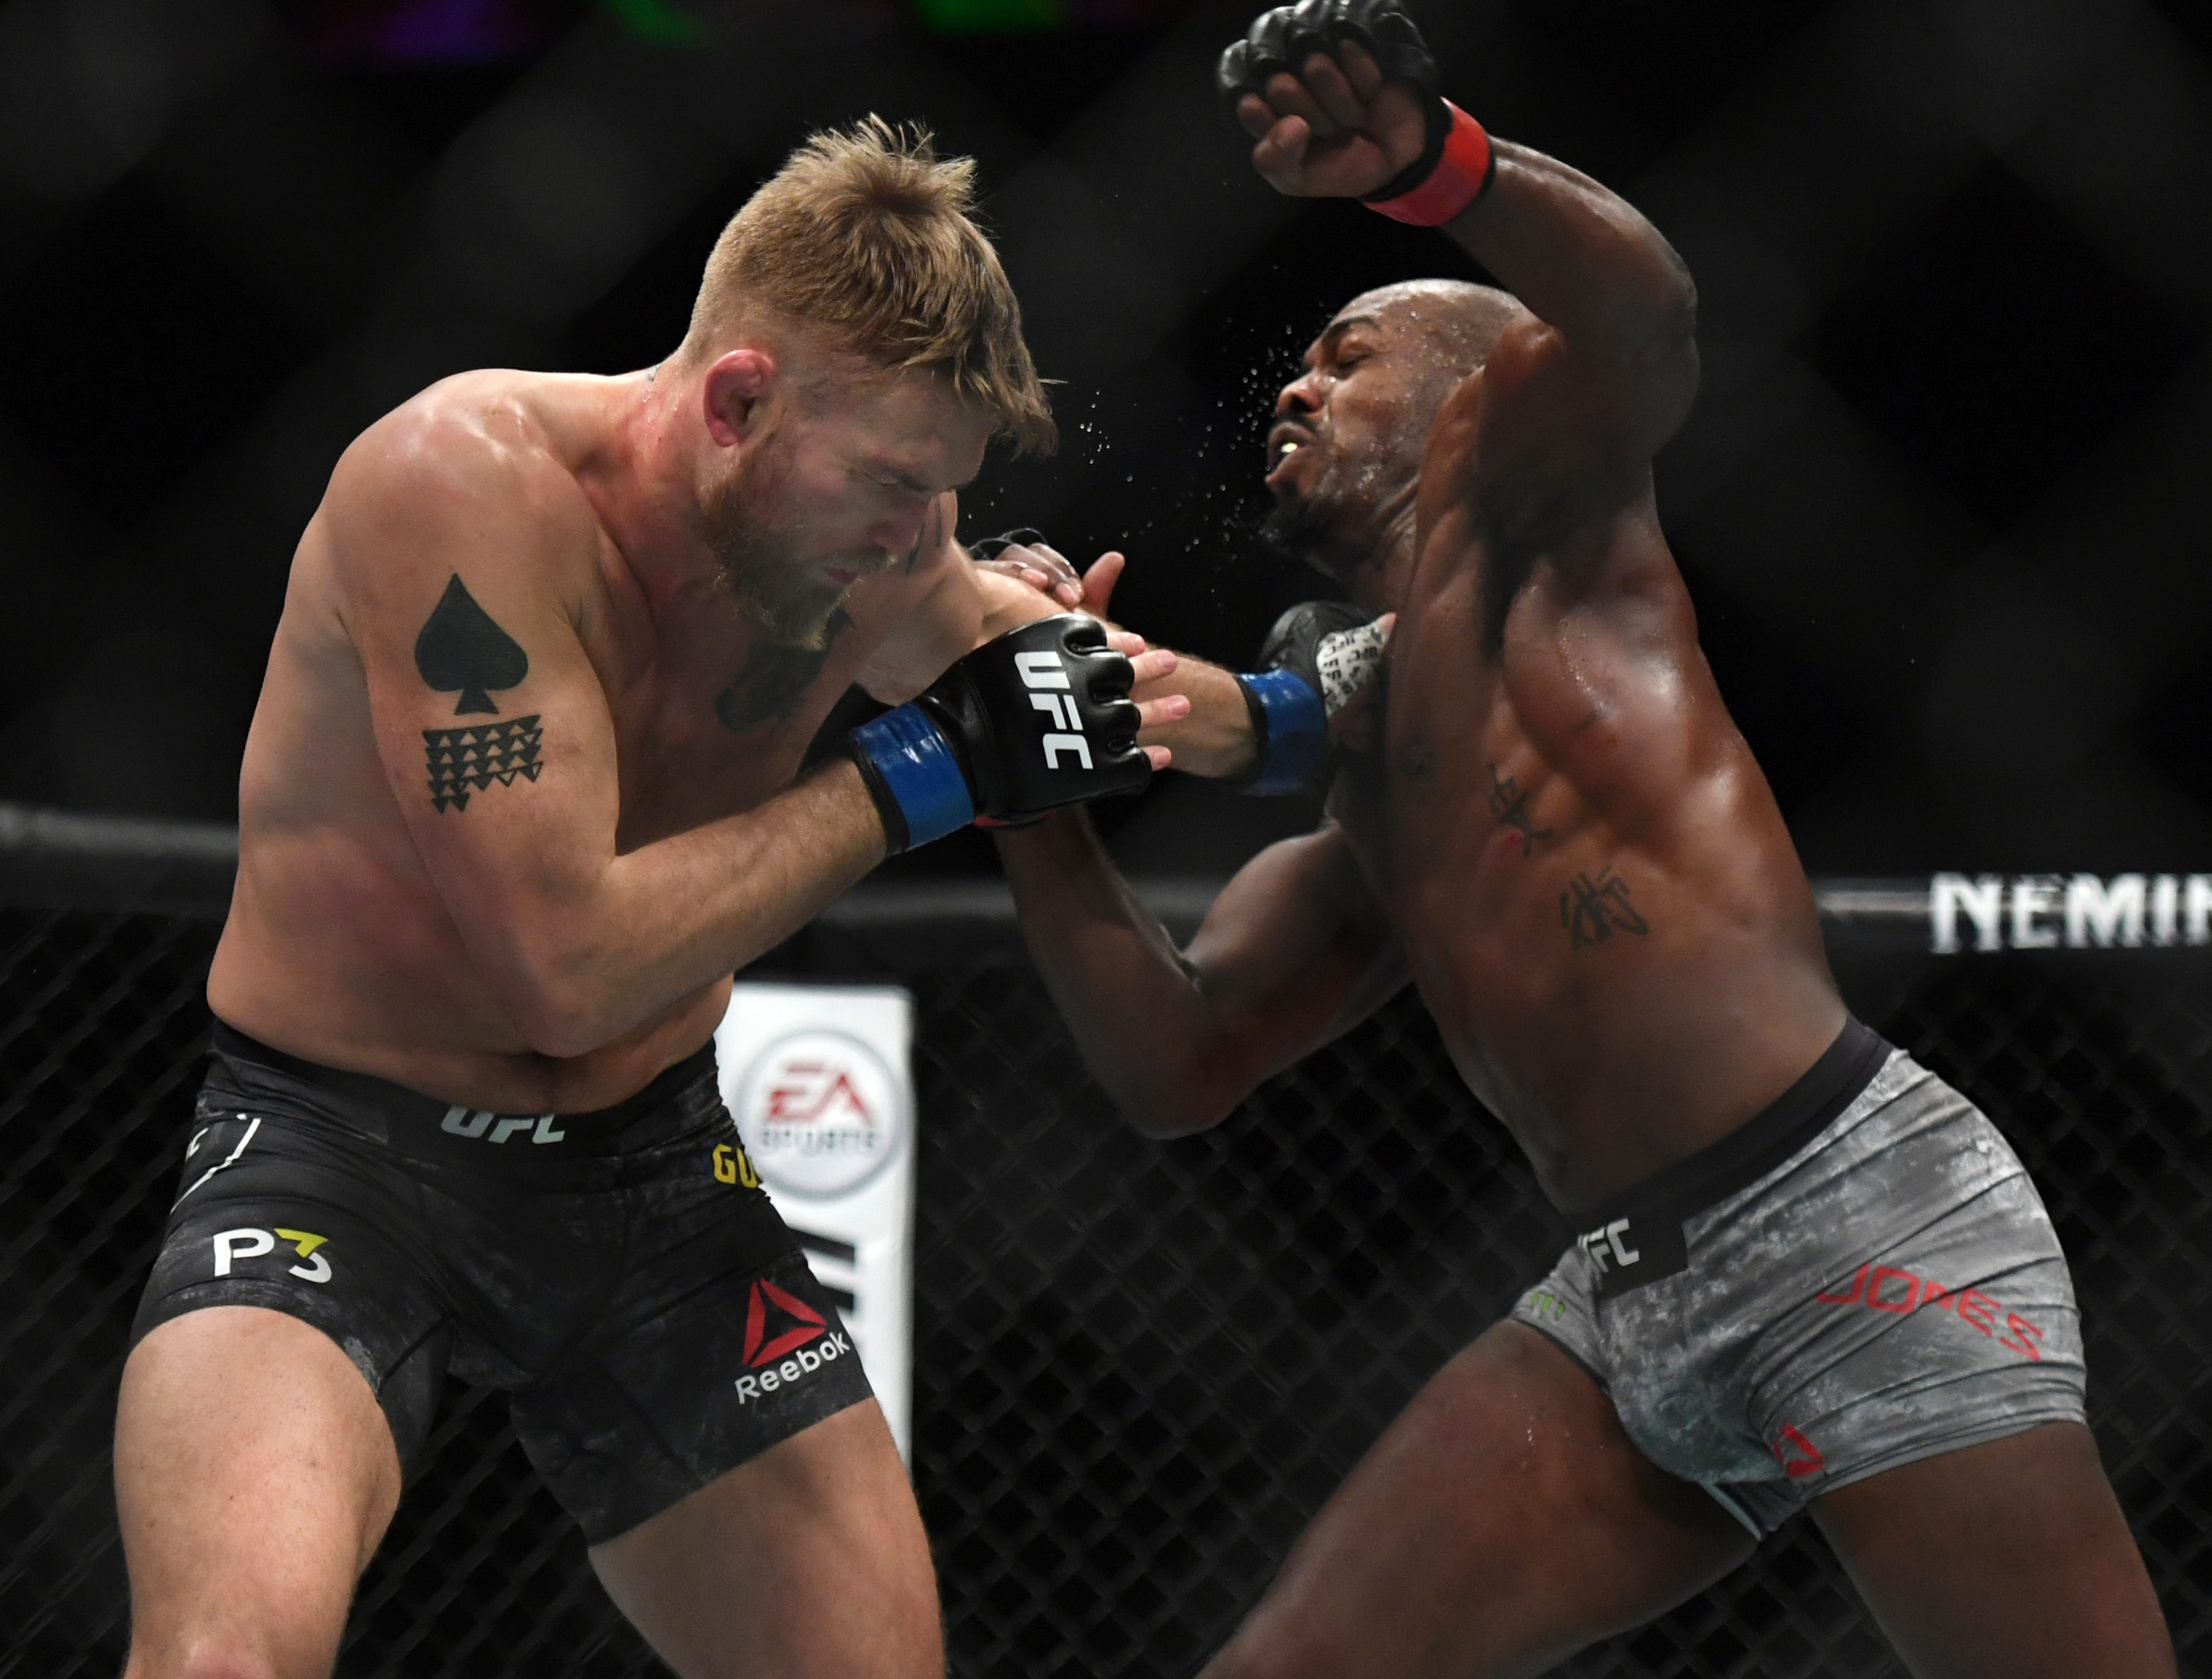 Alexander Gustafsson, left, and Jon Jones exchange punches during the UFC men's light heavyweight mixed martial arts bout at UFC 232, Saturday, Dec. 29, 2018, in Inglewood, Calif. (AP Photo/Kyusung Gong)